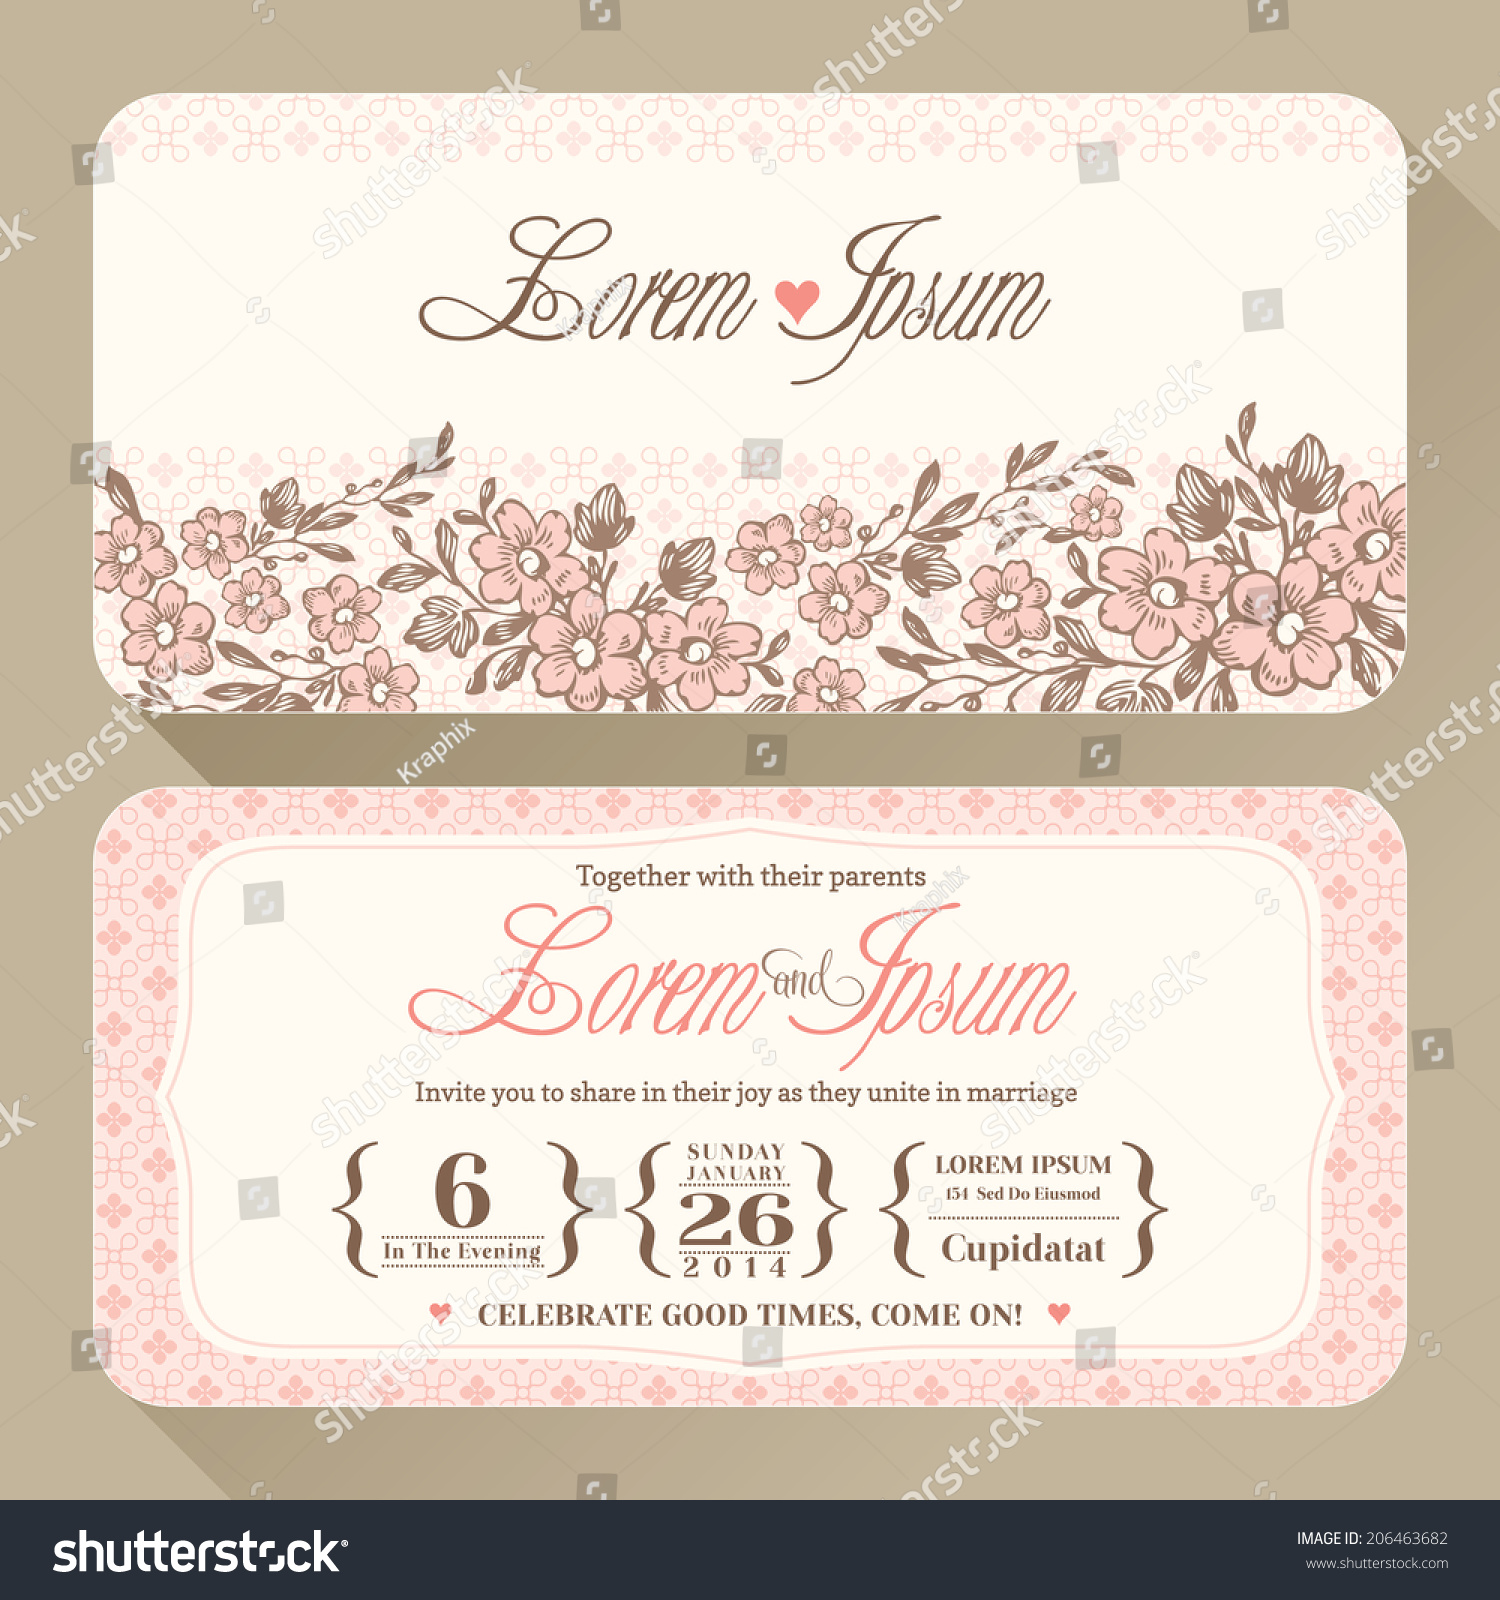 Vintage floral wedding invitation card design stock vector 206463682 vintage floral wedding invitation card design template stopboris Choice Image